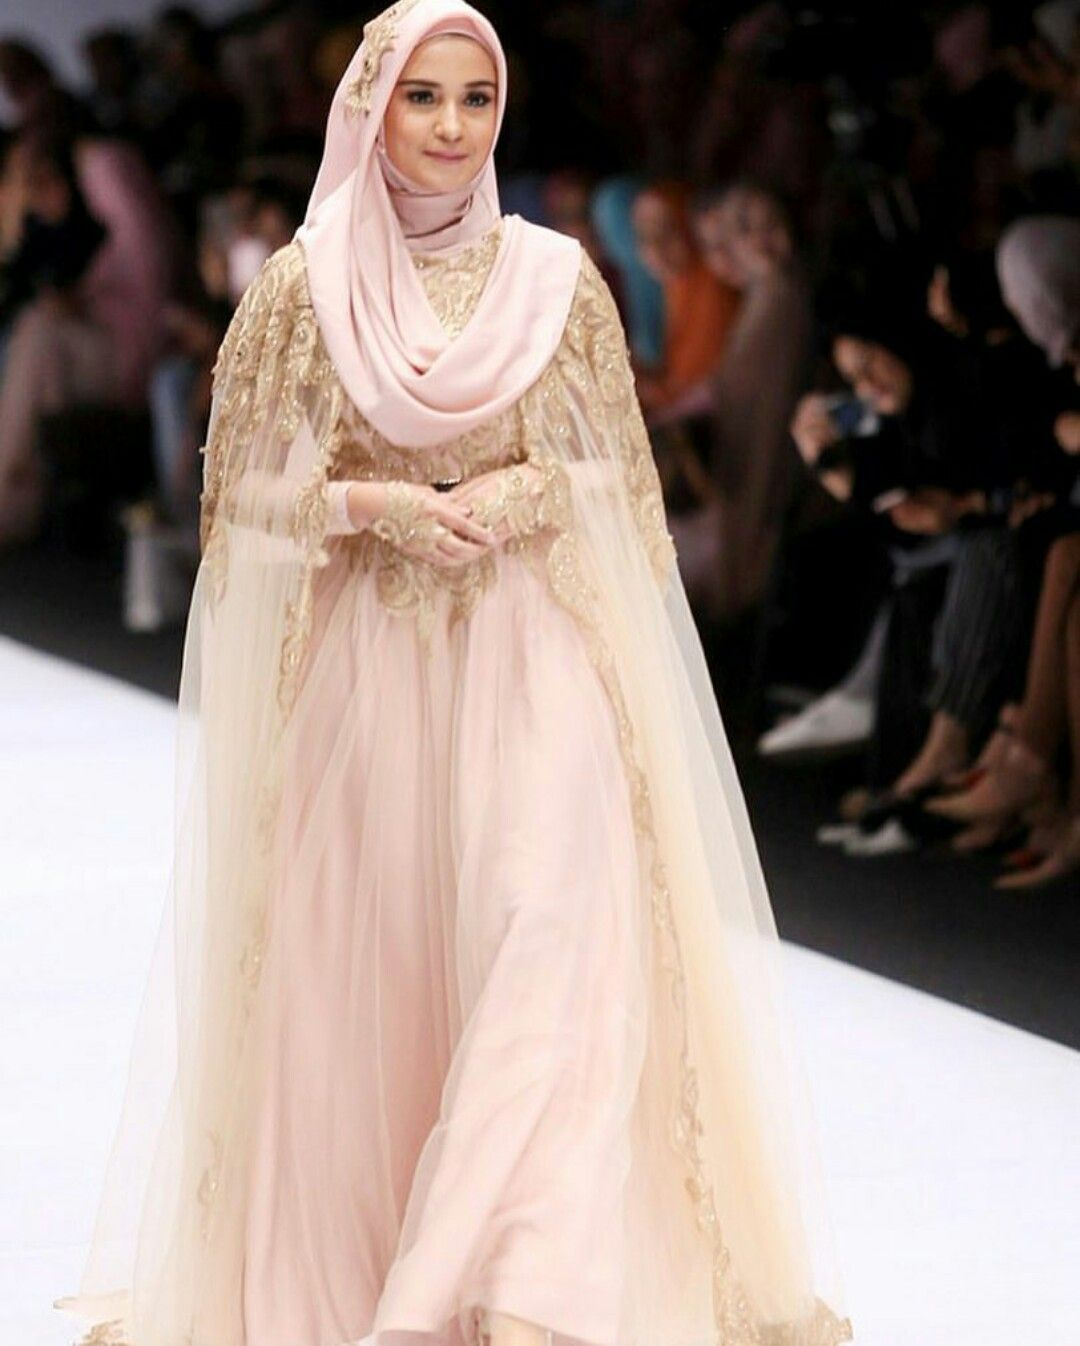 I like the idea of a cape to make the dress more modest for Muslim wedding dress photo